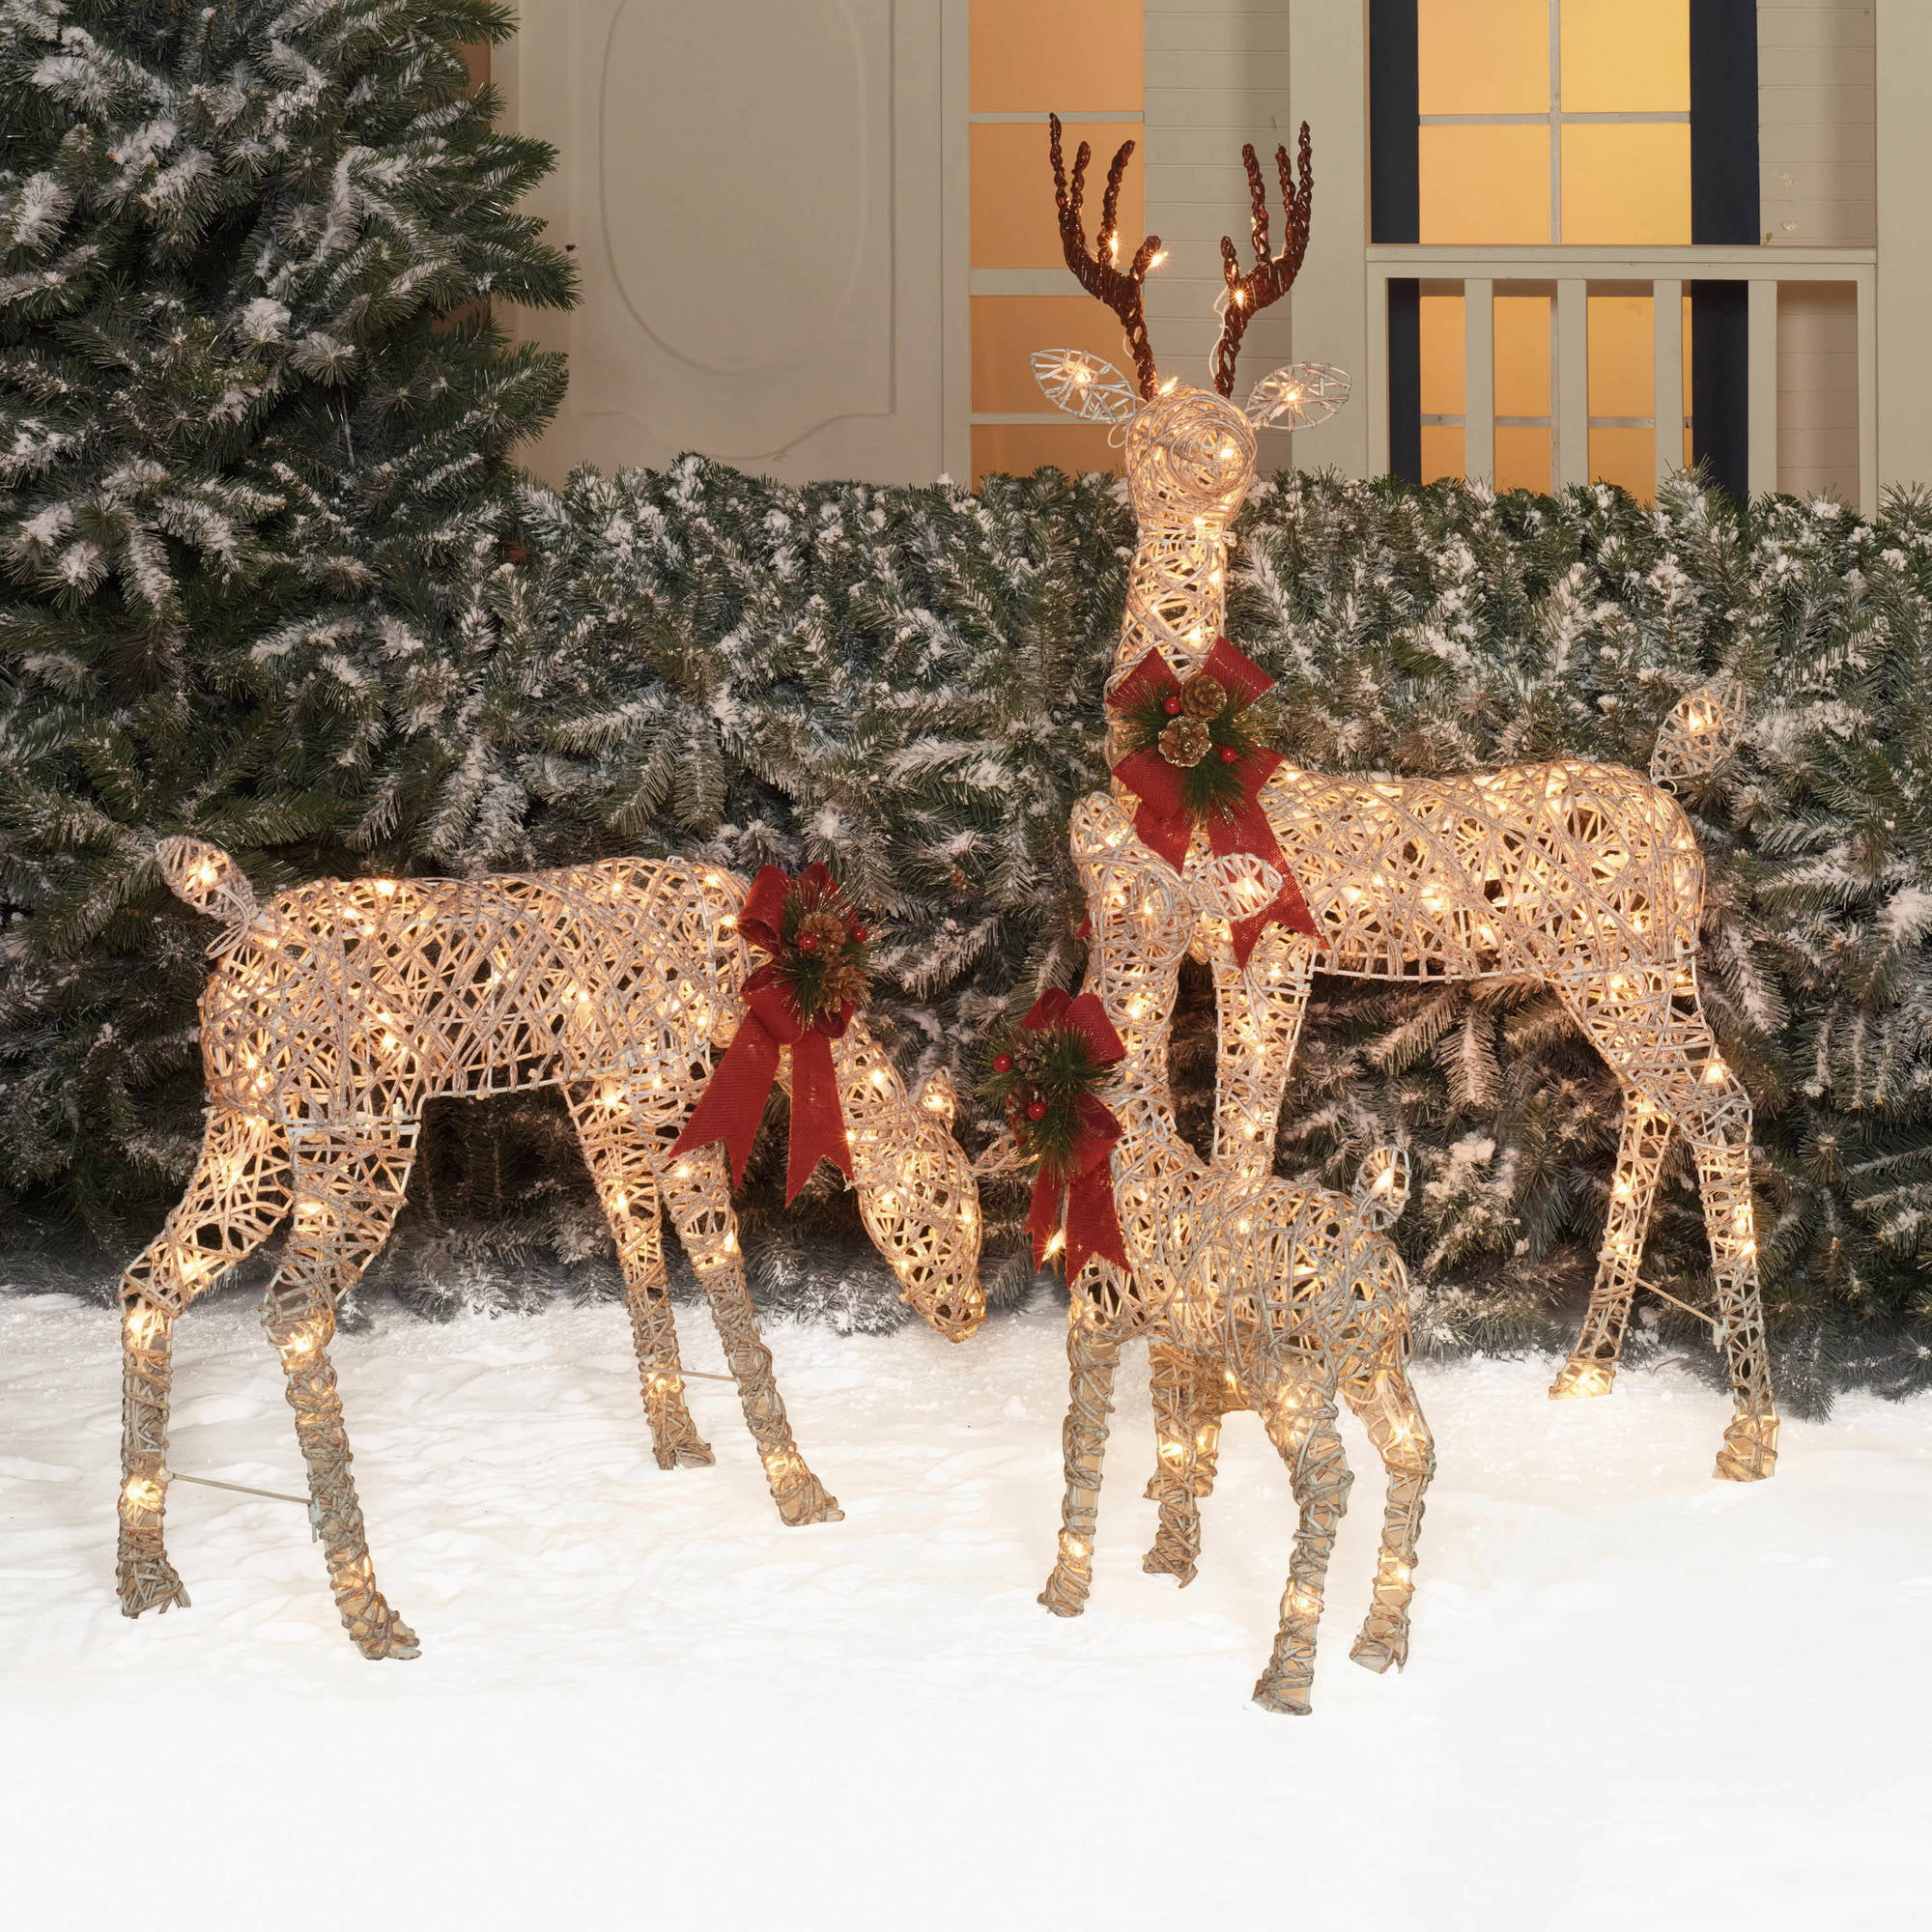 holiday time christmas decor set of 3 woodland vine deer family sculpture walmartcom - Outdoor Deer Christmas Decorations